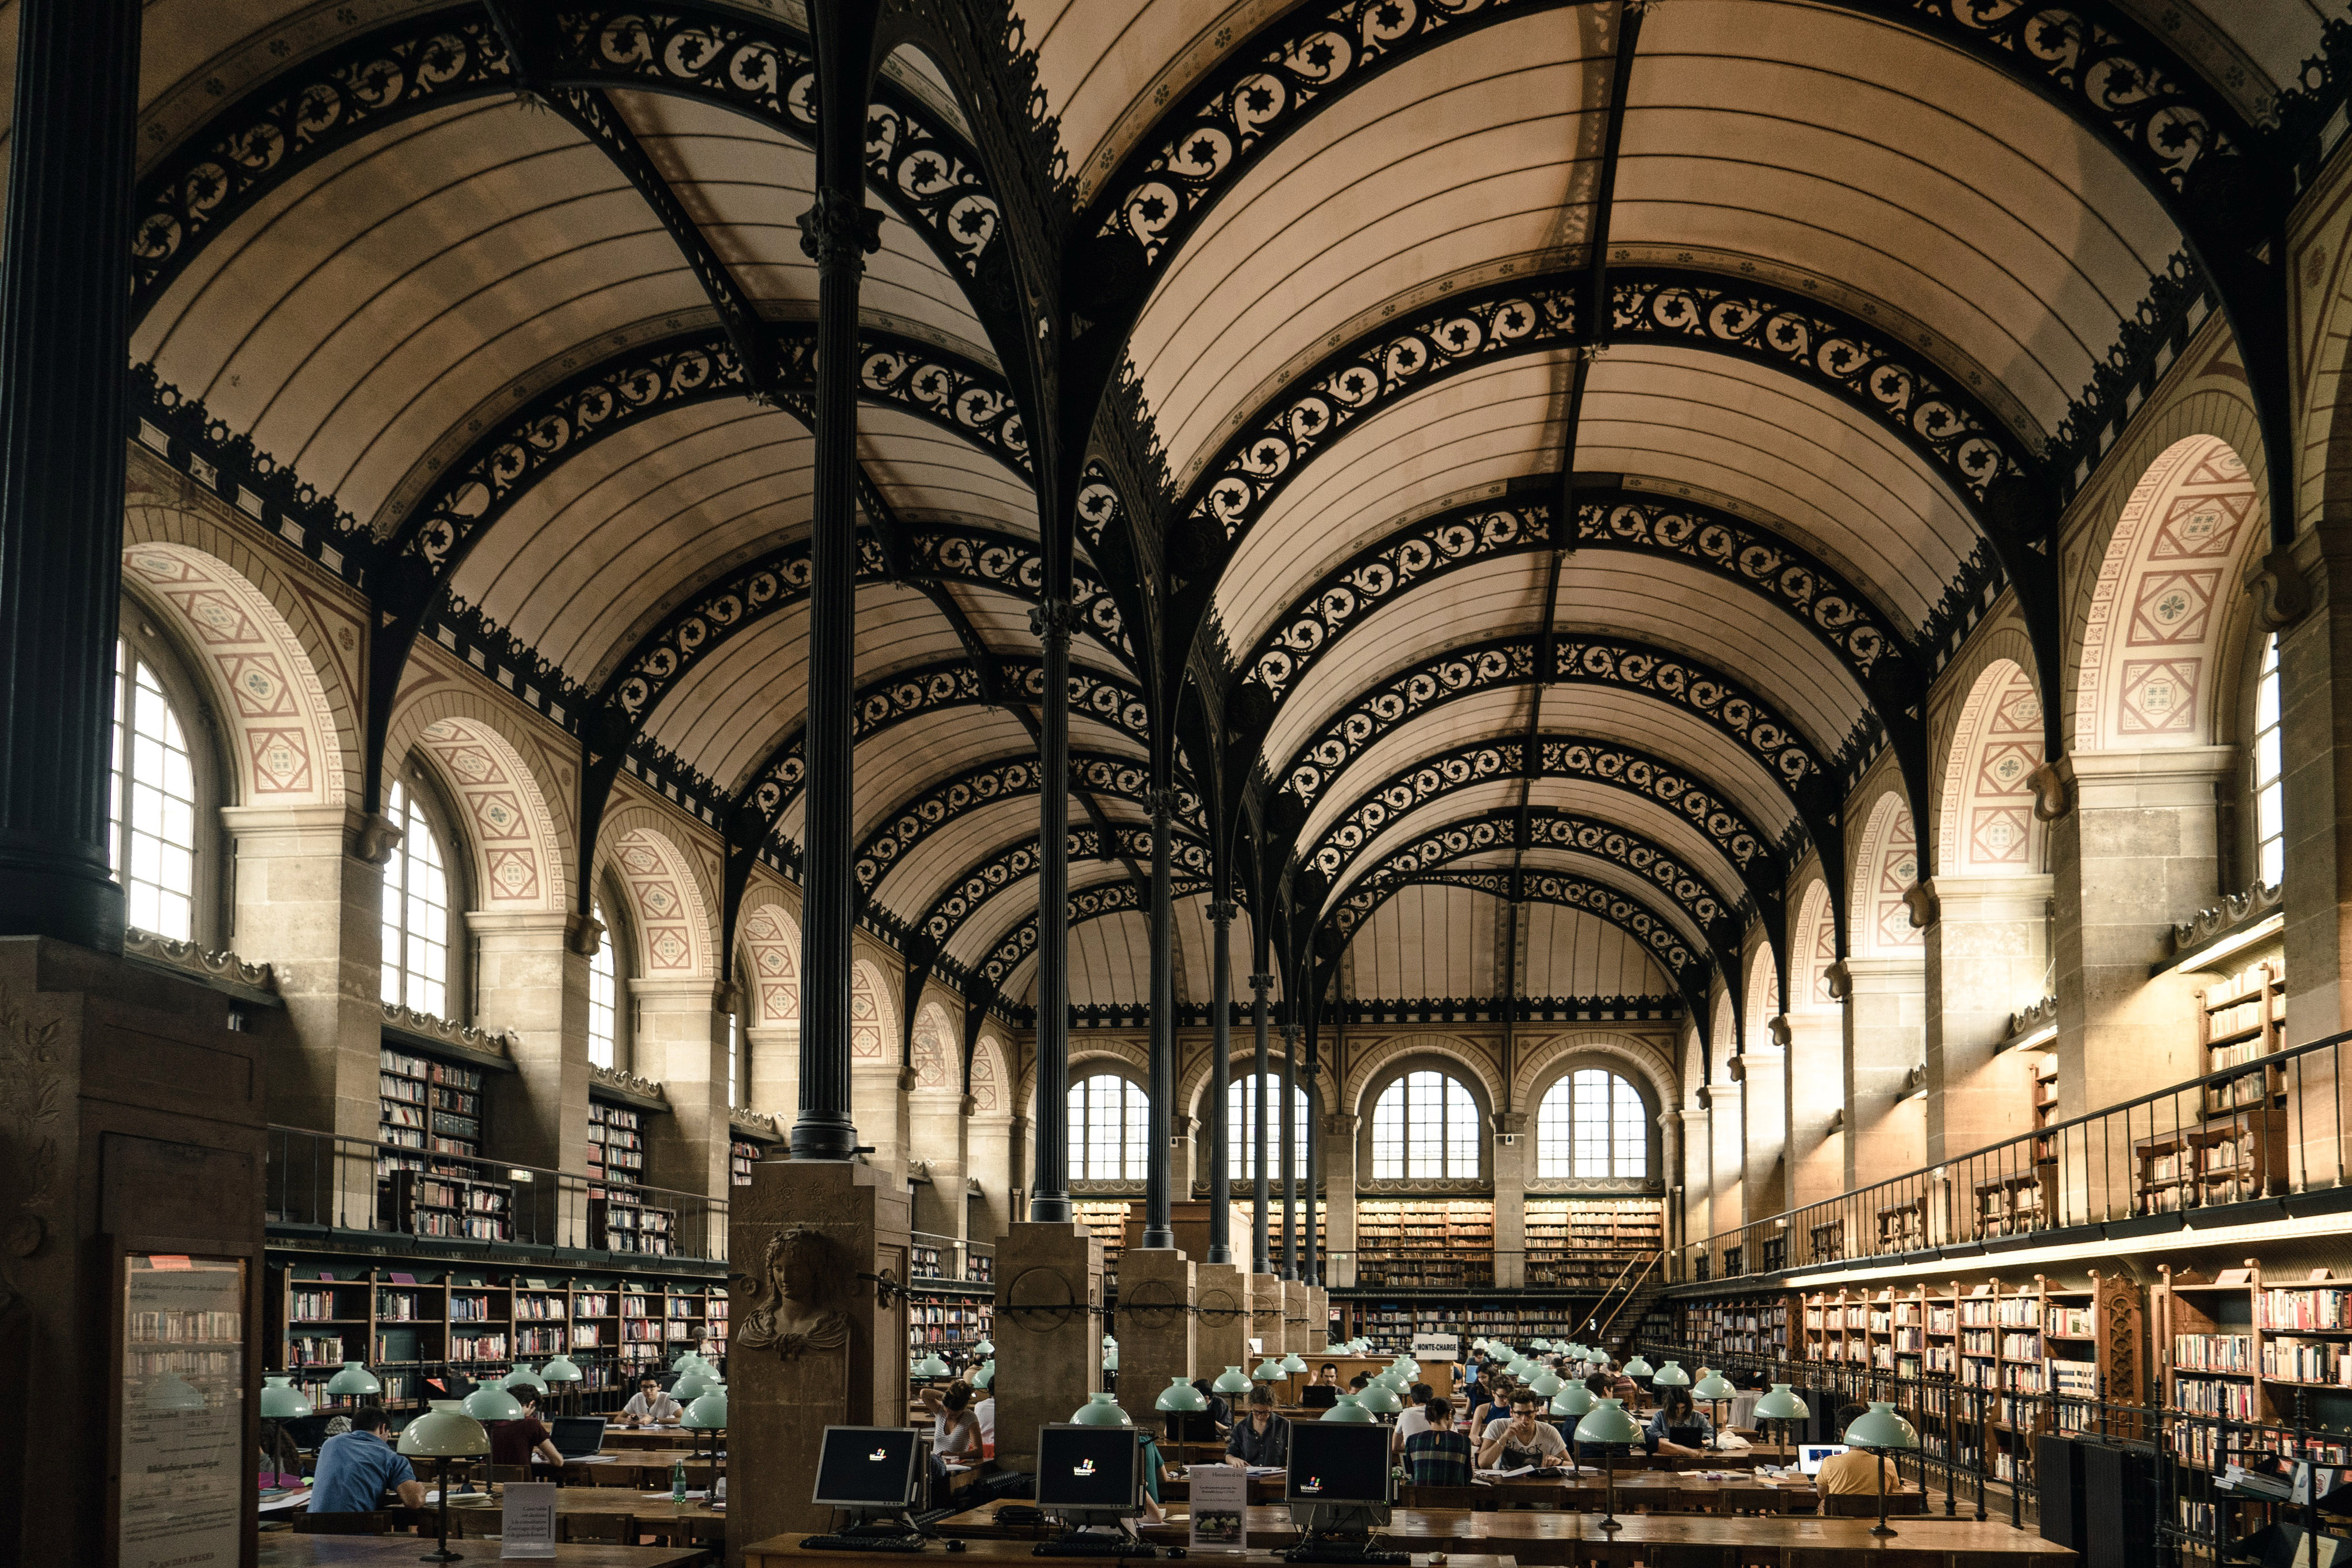 Library Interior in Paris, France image - Free stock photo